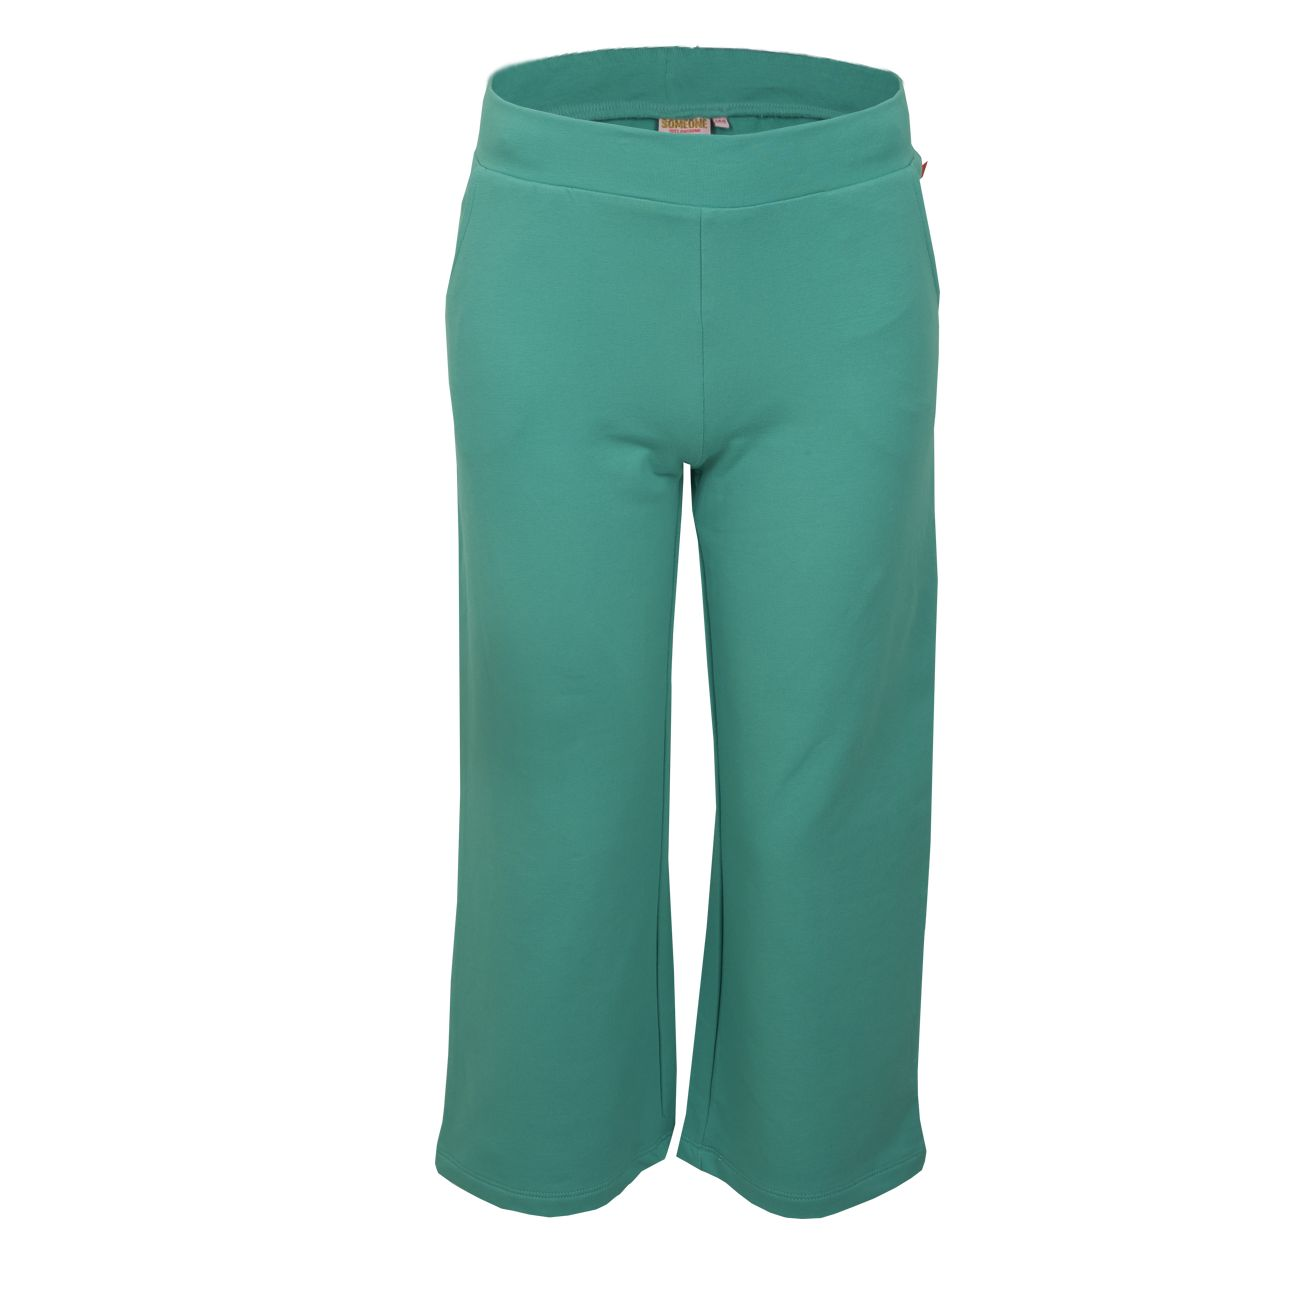 Culotte 128 Mint SOMEONE 100% Awesome